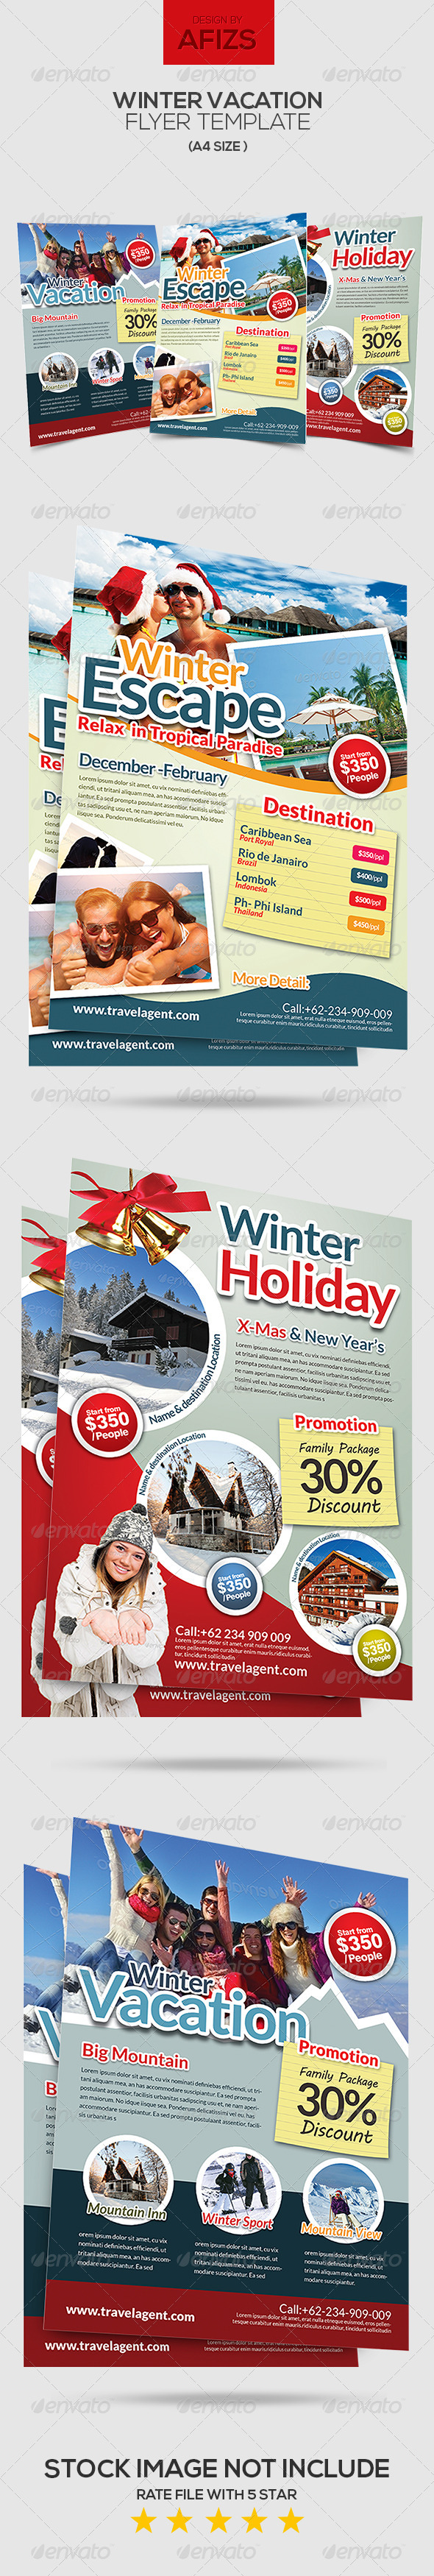 GraphicRiver Winter Vacation Flyer 6217022